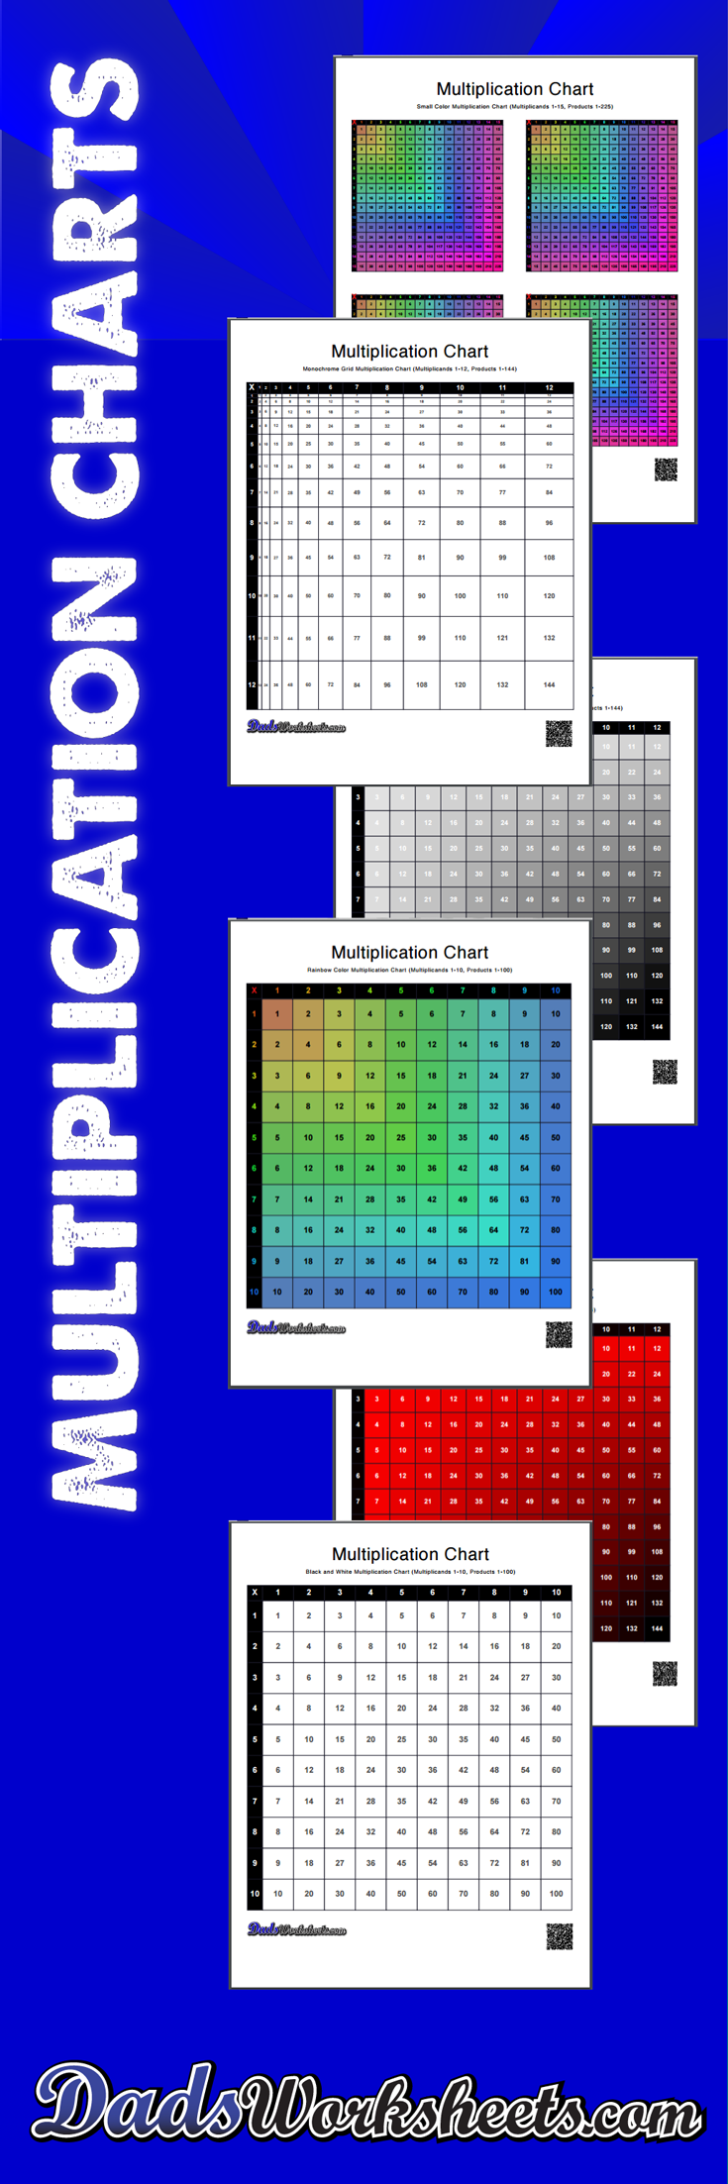 A Multiplication Chart All The Way To 12